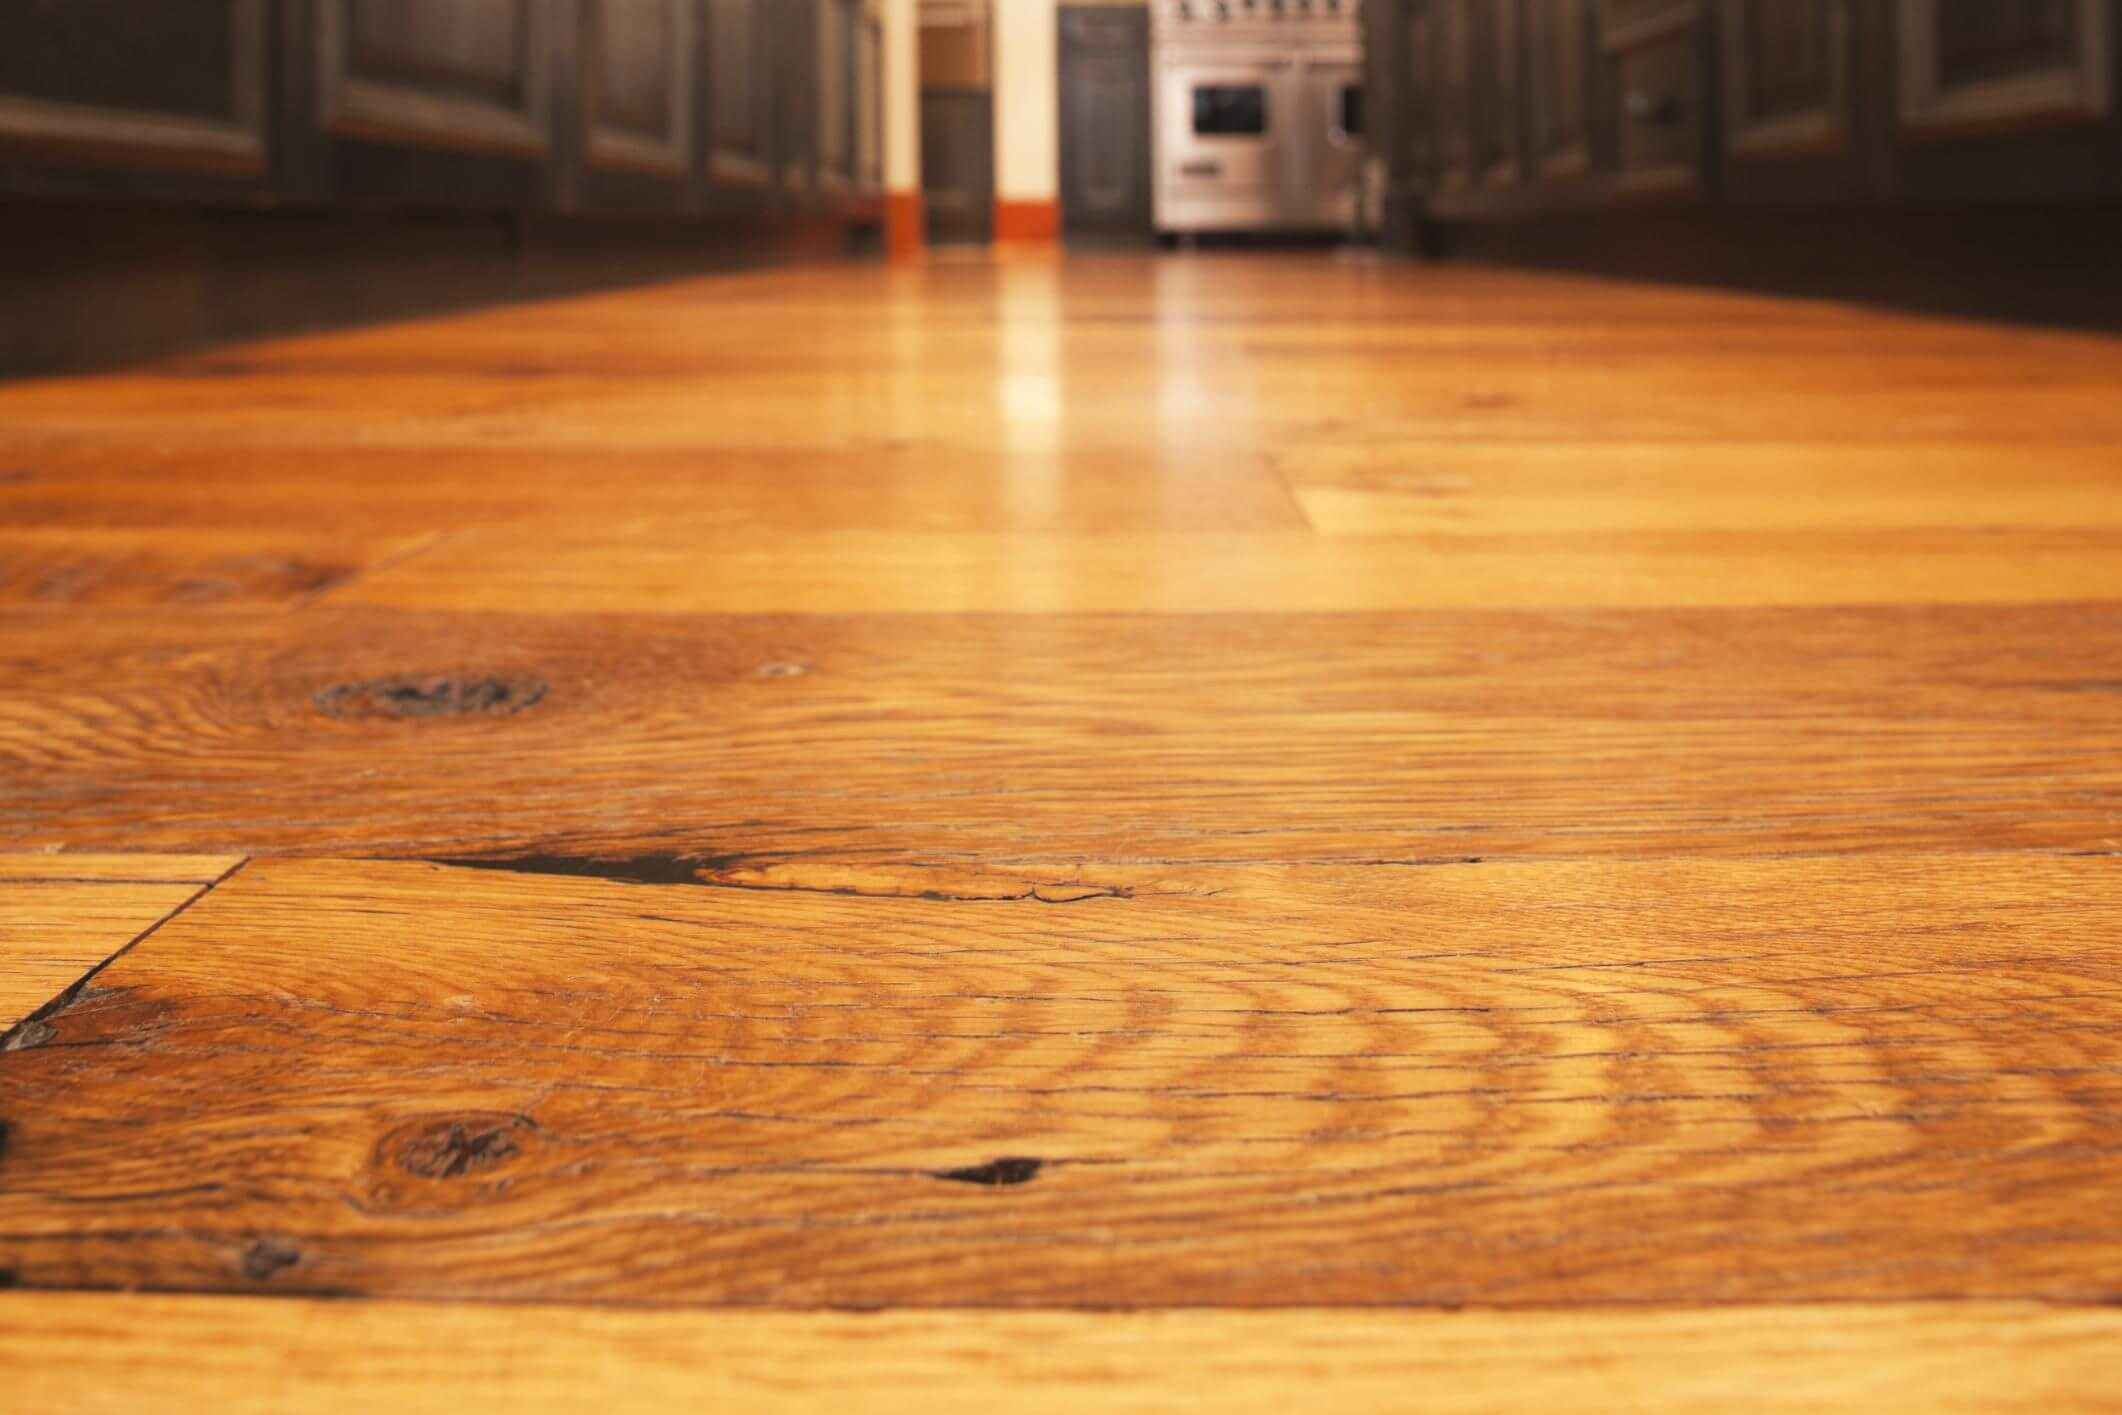 Hardwood floors may cause an issue depending on how dense the wood is